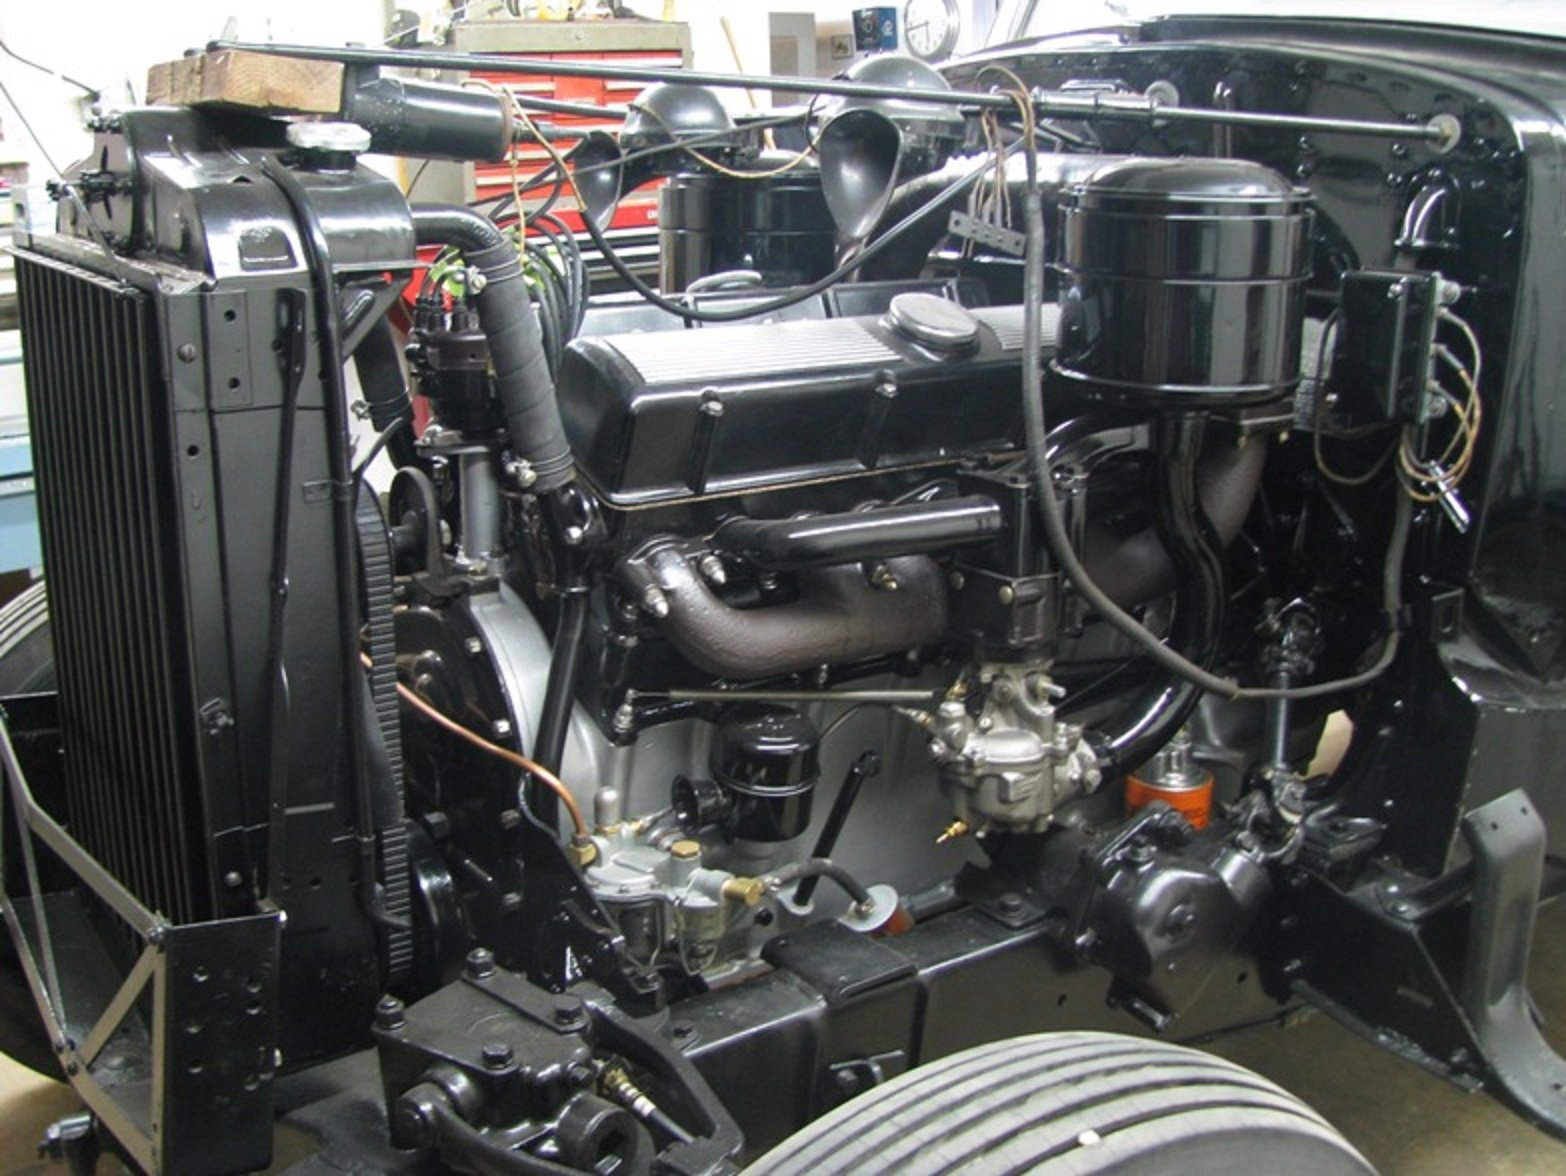 1937 Cadillac 85 Touring Sedan For Sale (picture 6 of 6)